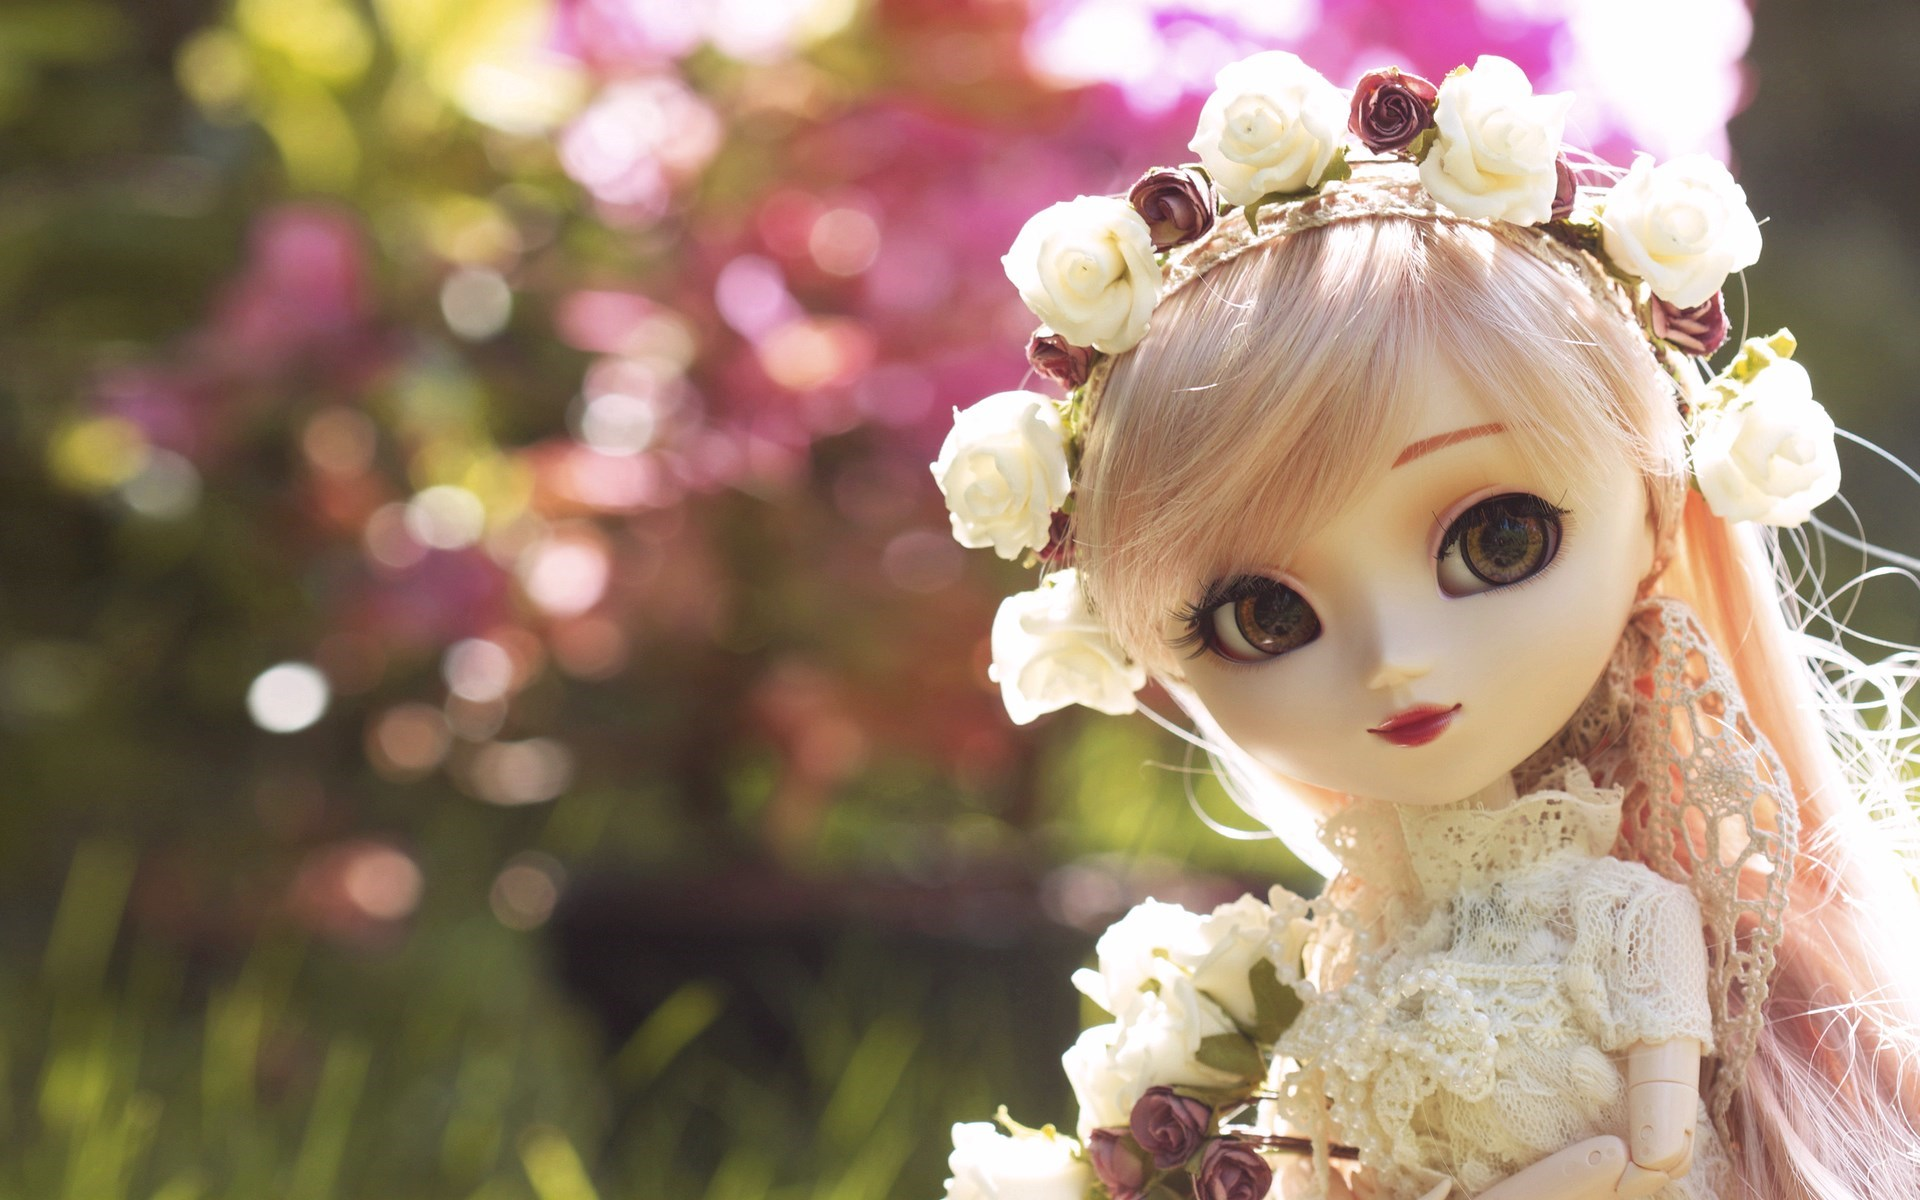 Toy Doll Flowers HD Wallpaper